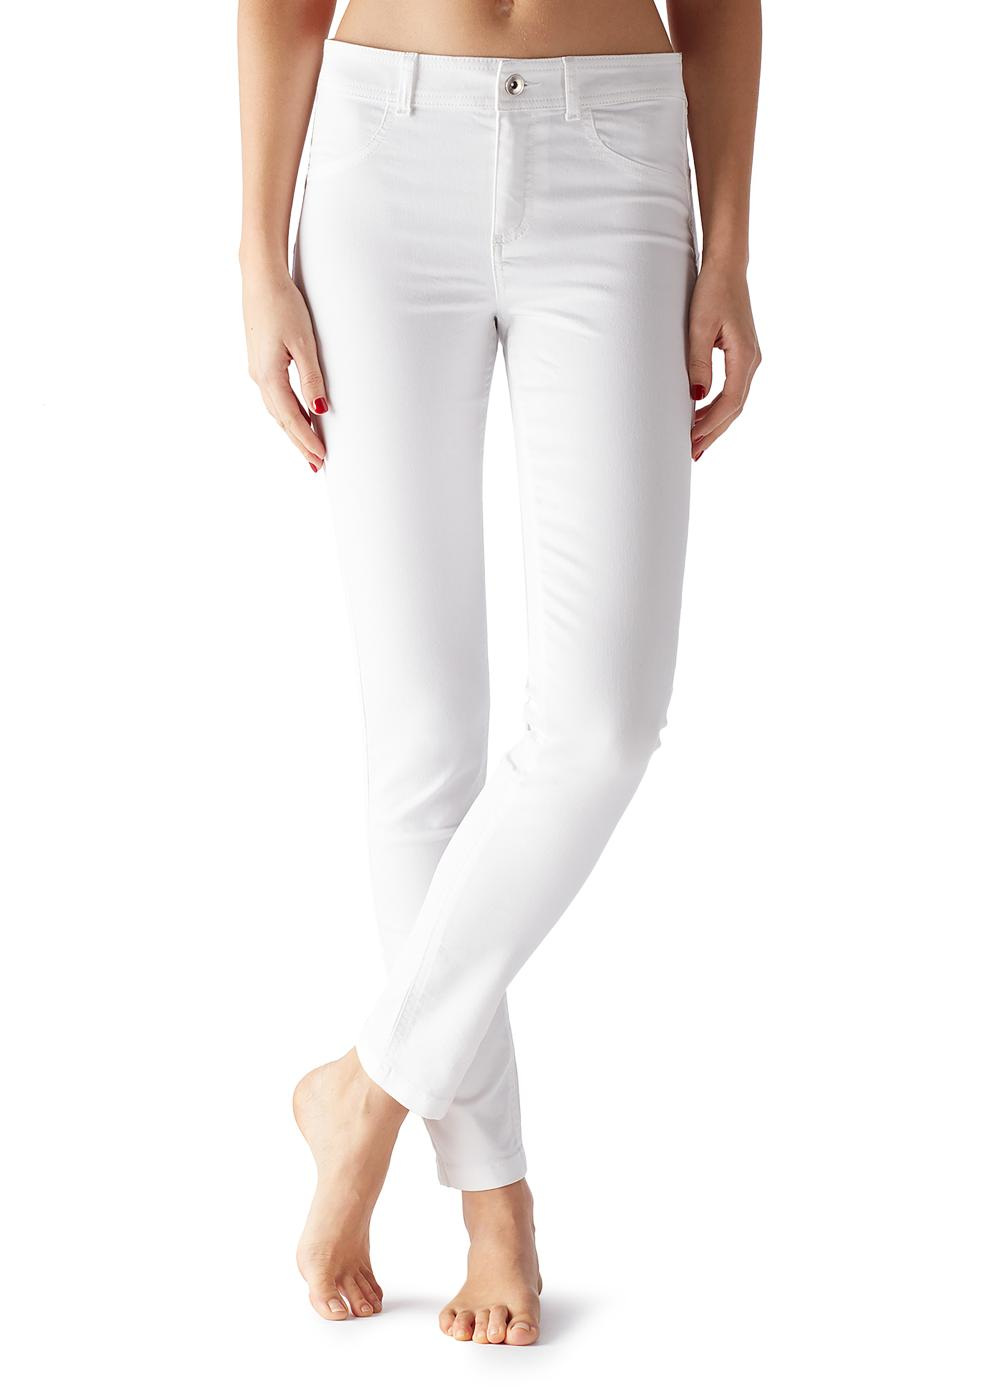 bd73bacd5b97 Jeans Push-Up - Calzedonia